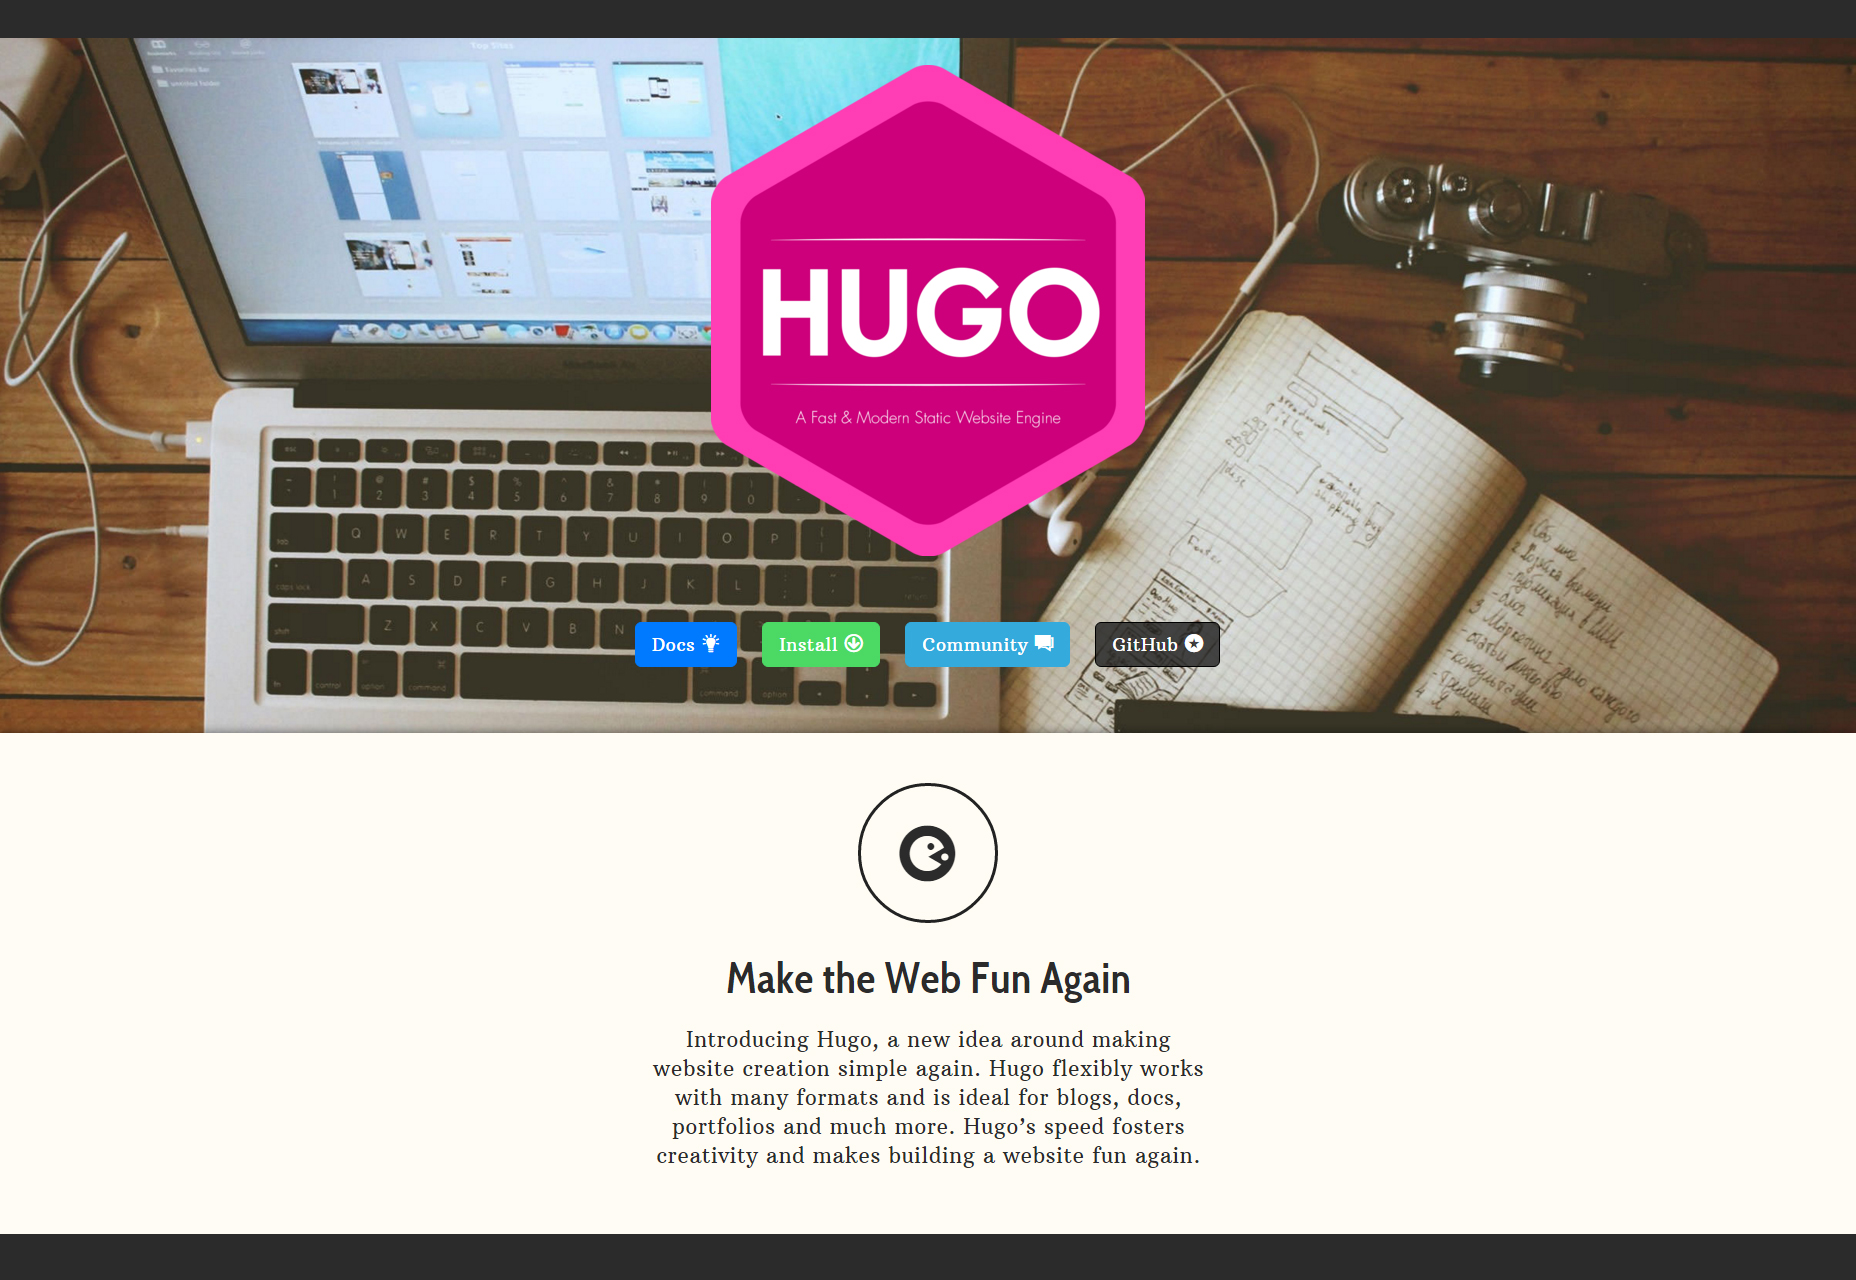 Hugo: A Fast and Modern Static Website Engine